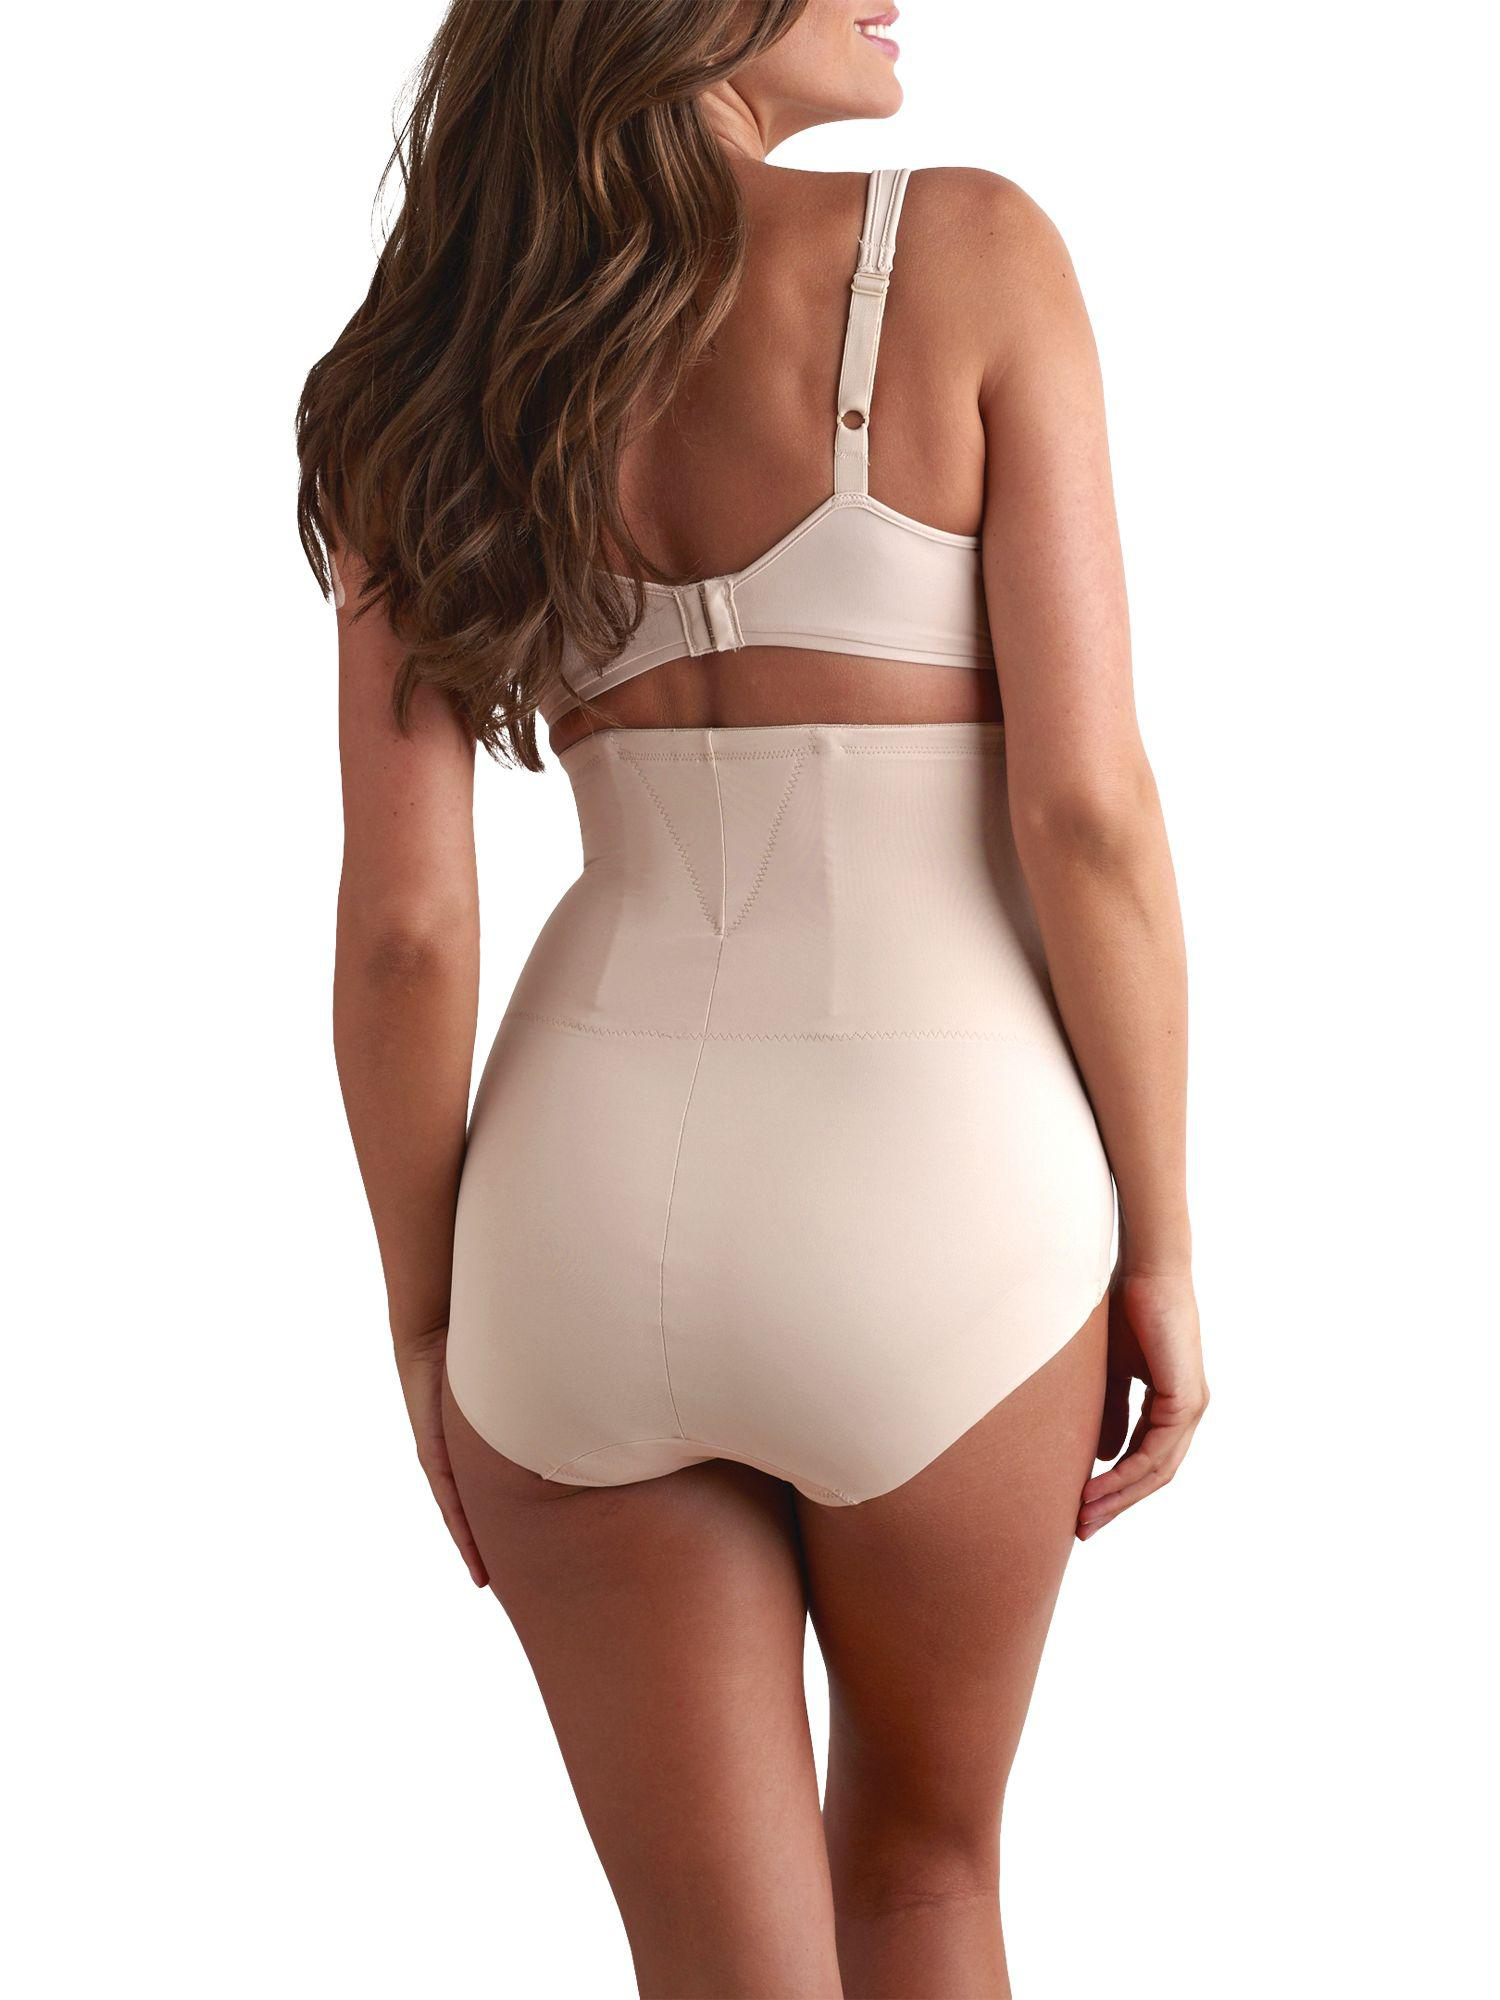 7d53773662 Miraclesuit Extra Firm Control High Waist Briefs in Natural - Lyst